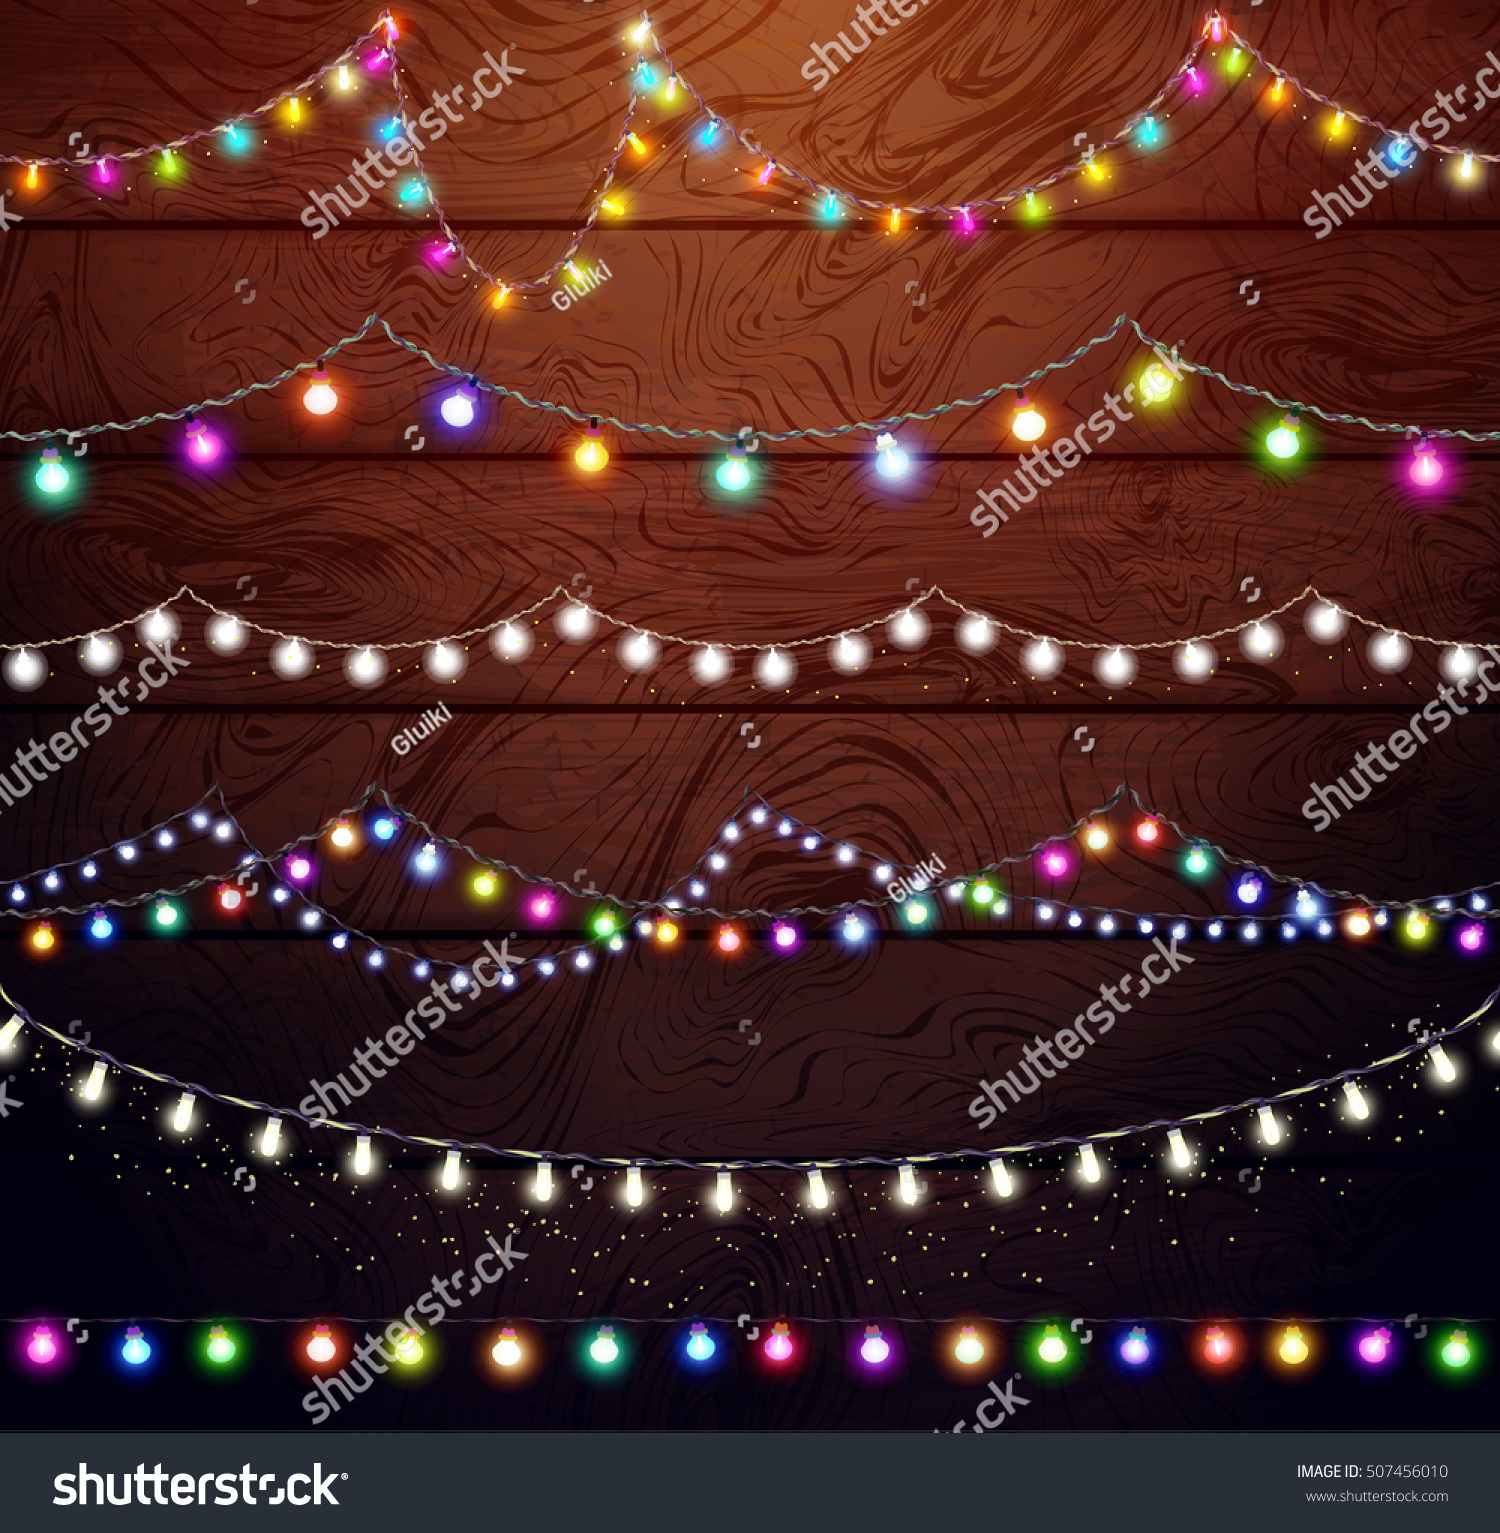 christmas lights set colored garlands new year designfestive decorations on wooden background - Decorating With Colored Christmas Lights